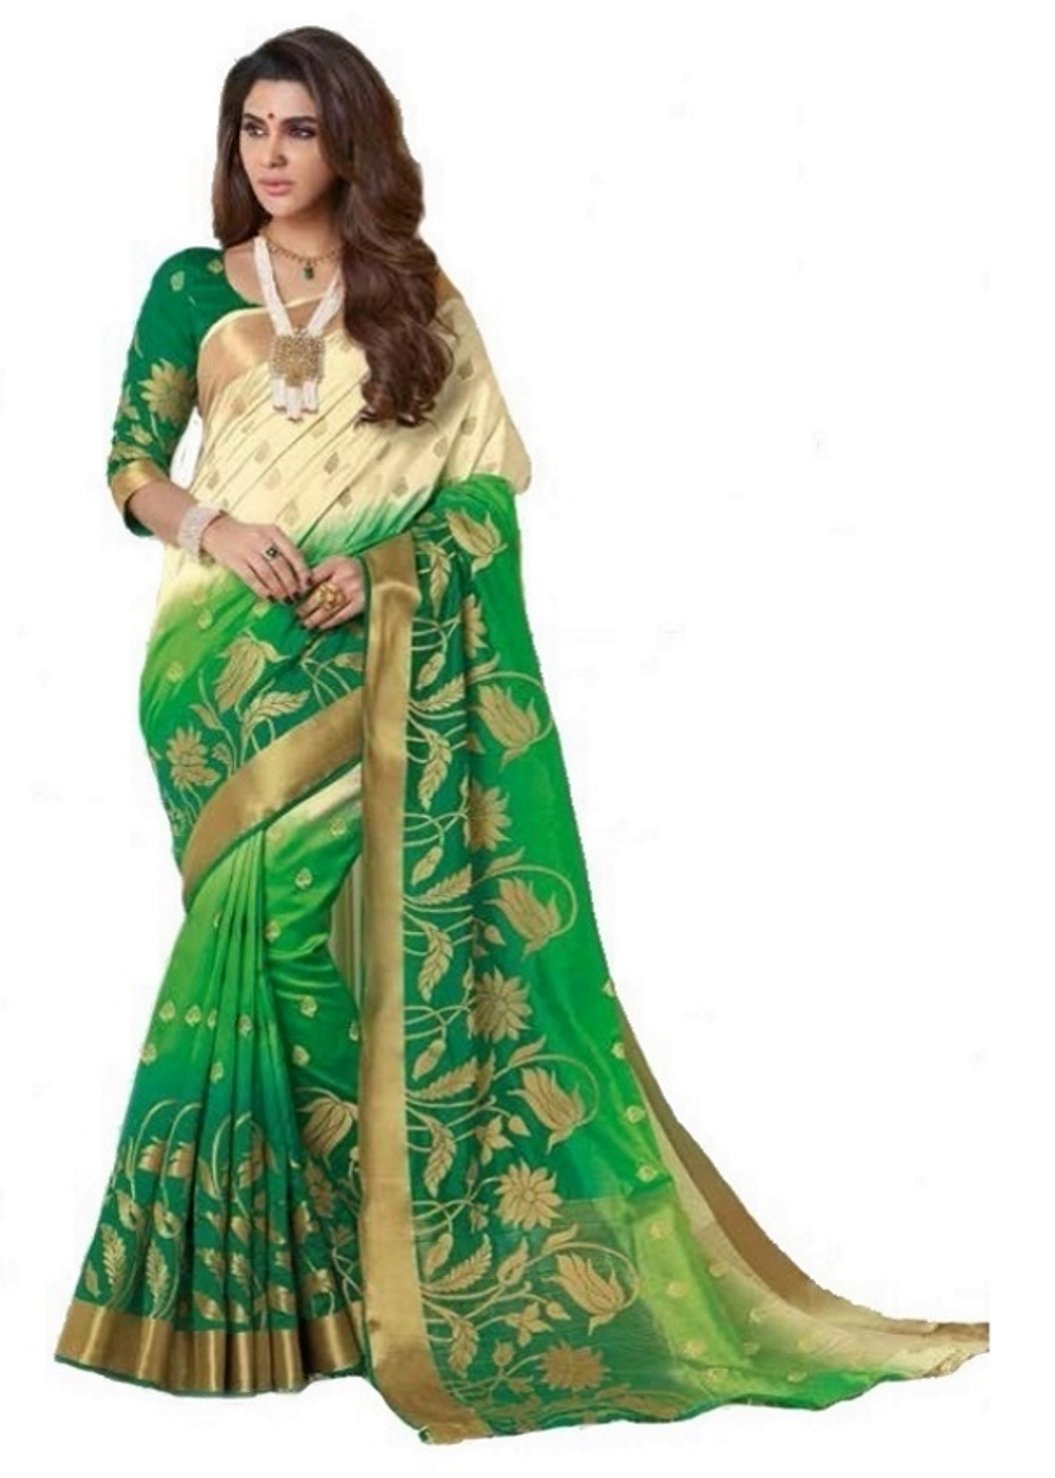 e506c527fda07f Rajguru Raw Silk Saree With Blouse Piece (RSP-784-heena5 Cream to ...